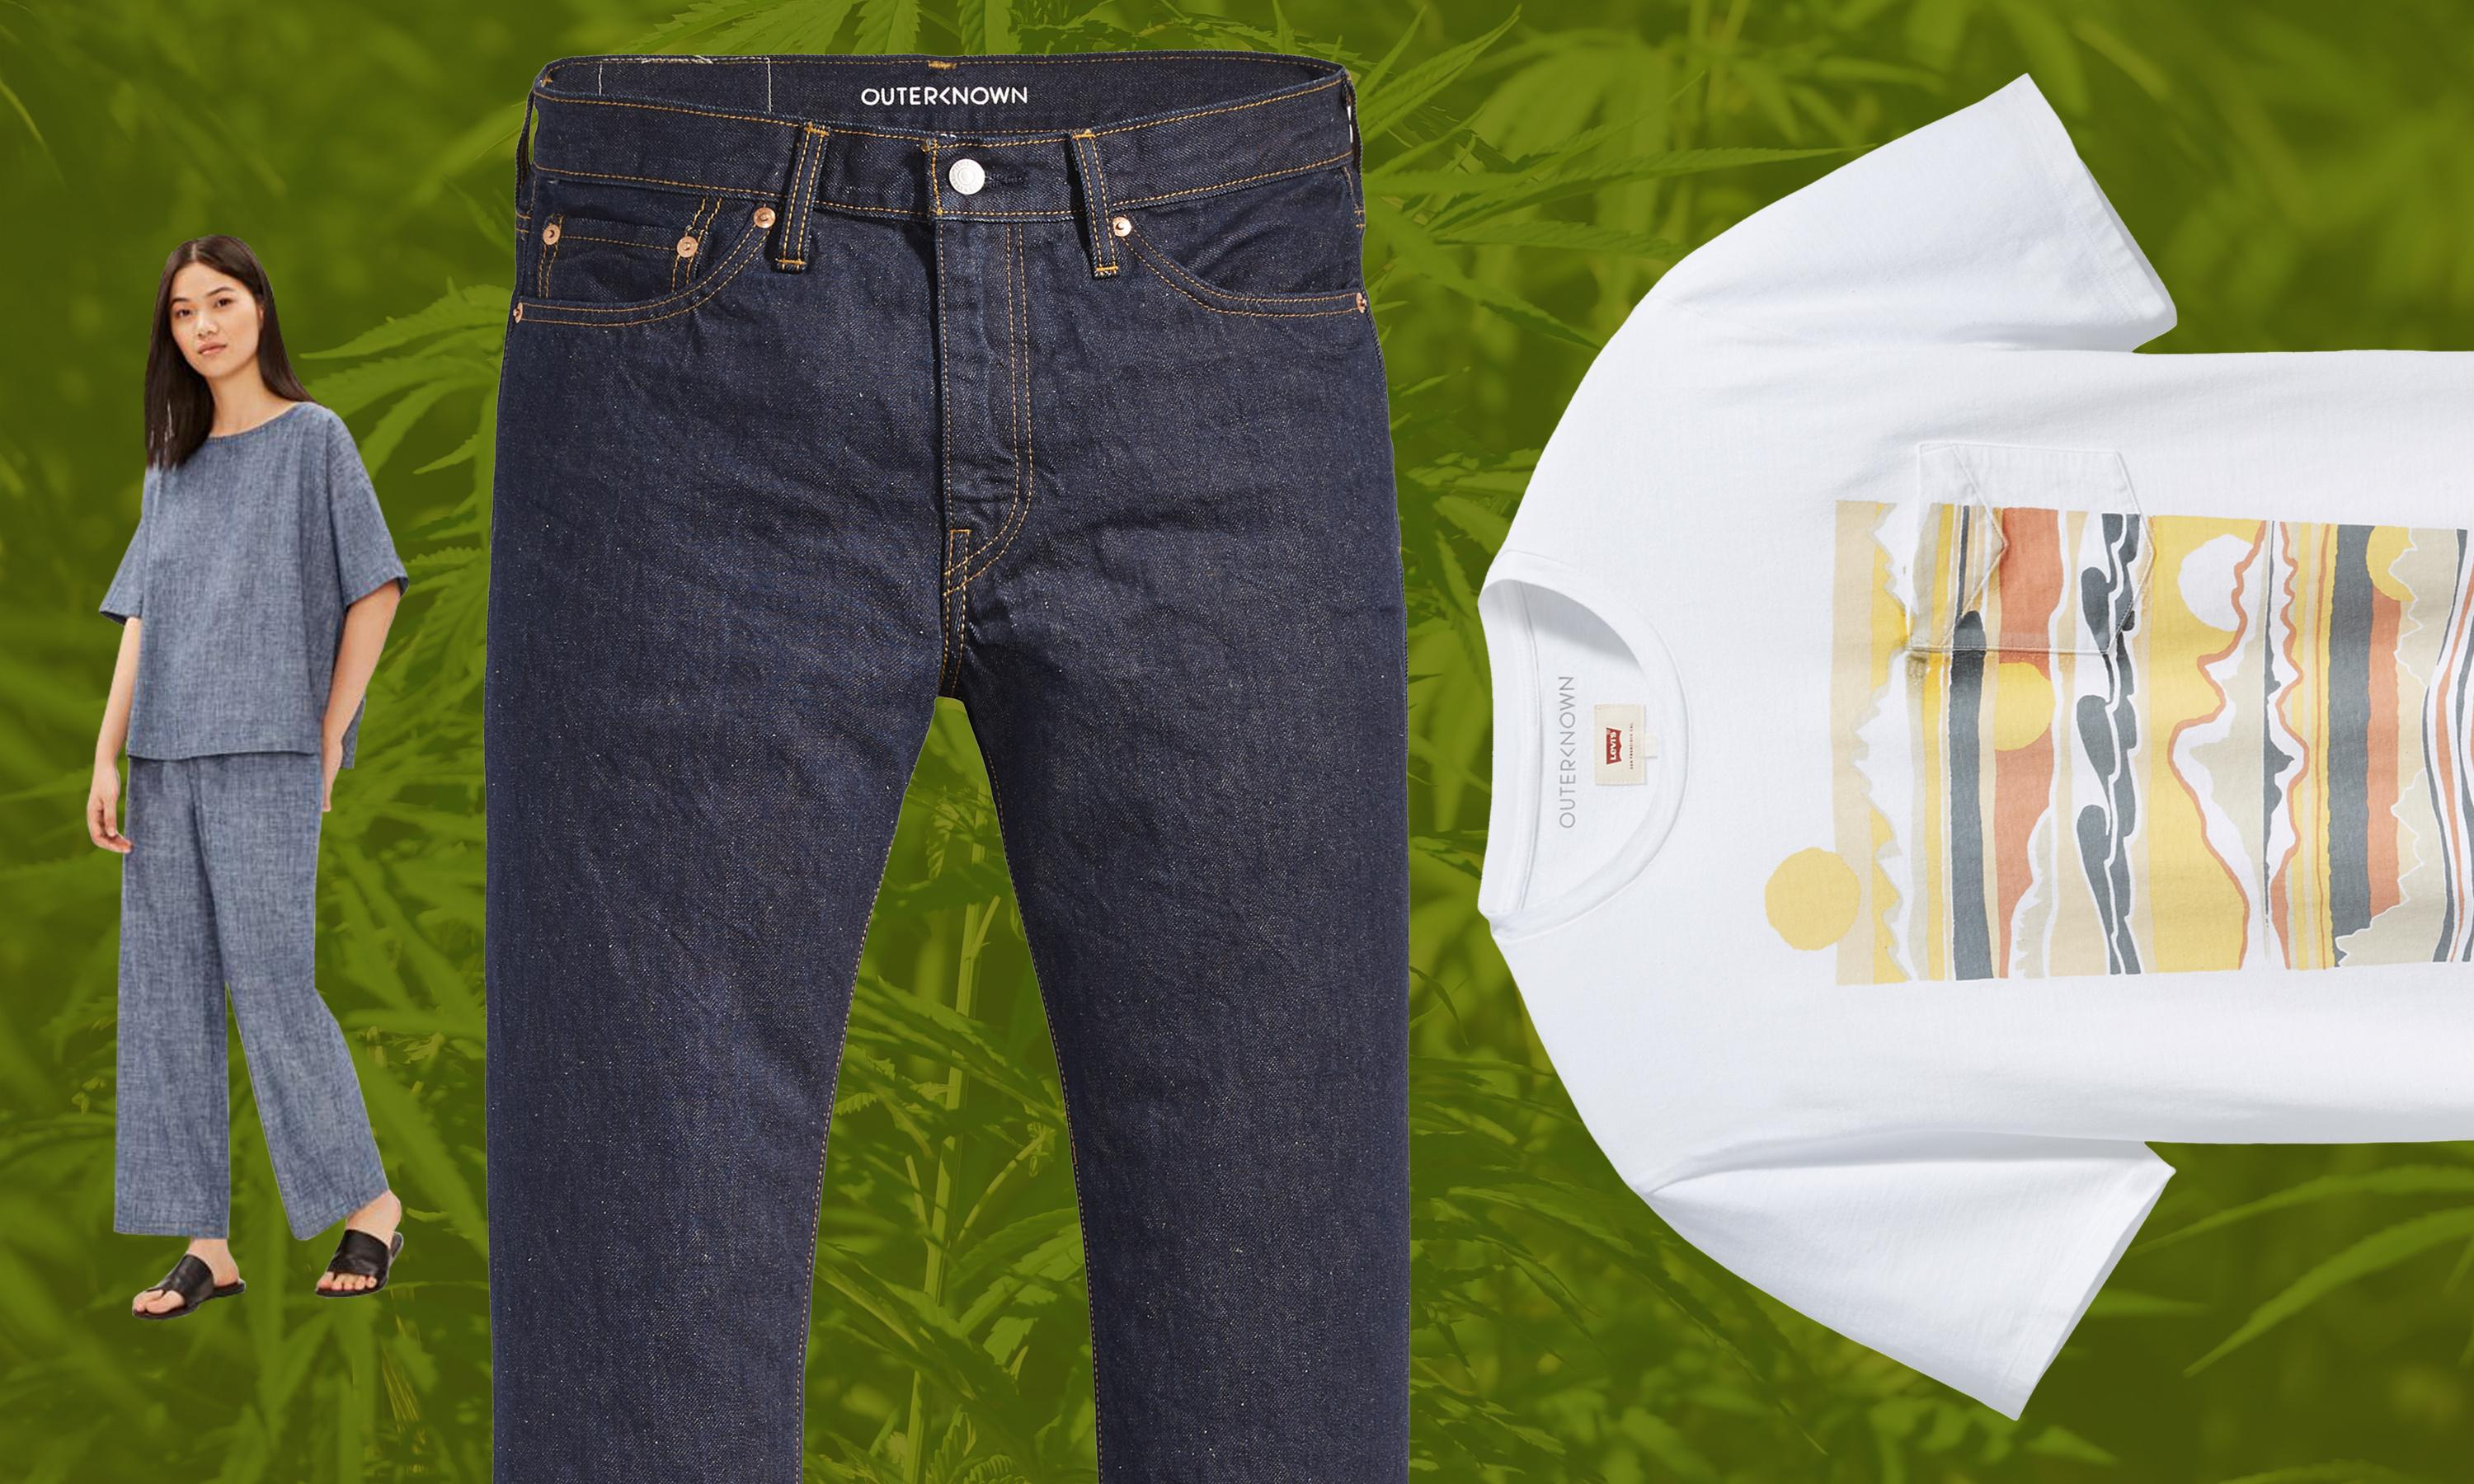 From eco benefits to legal status: everything you need to know about wearing hemp